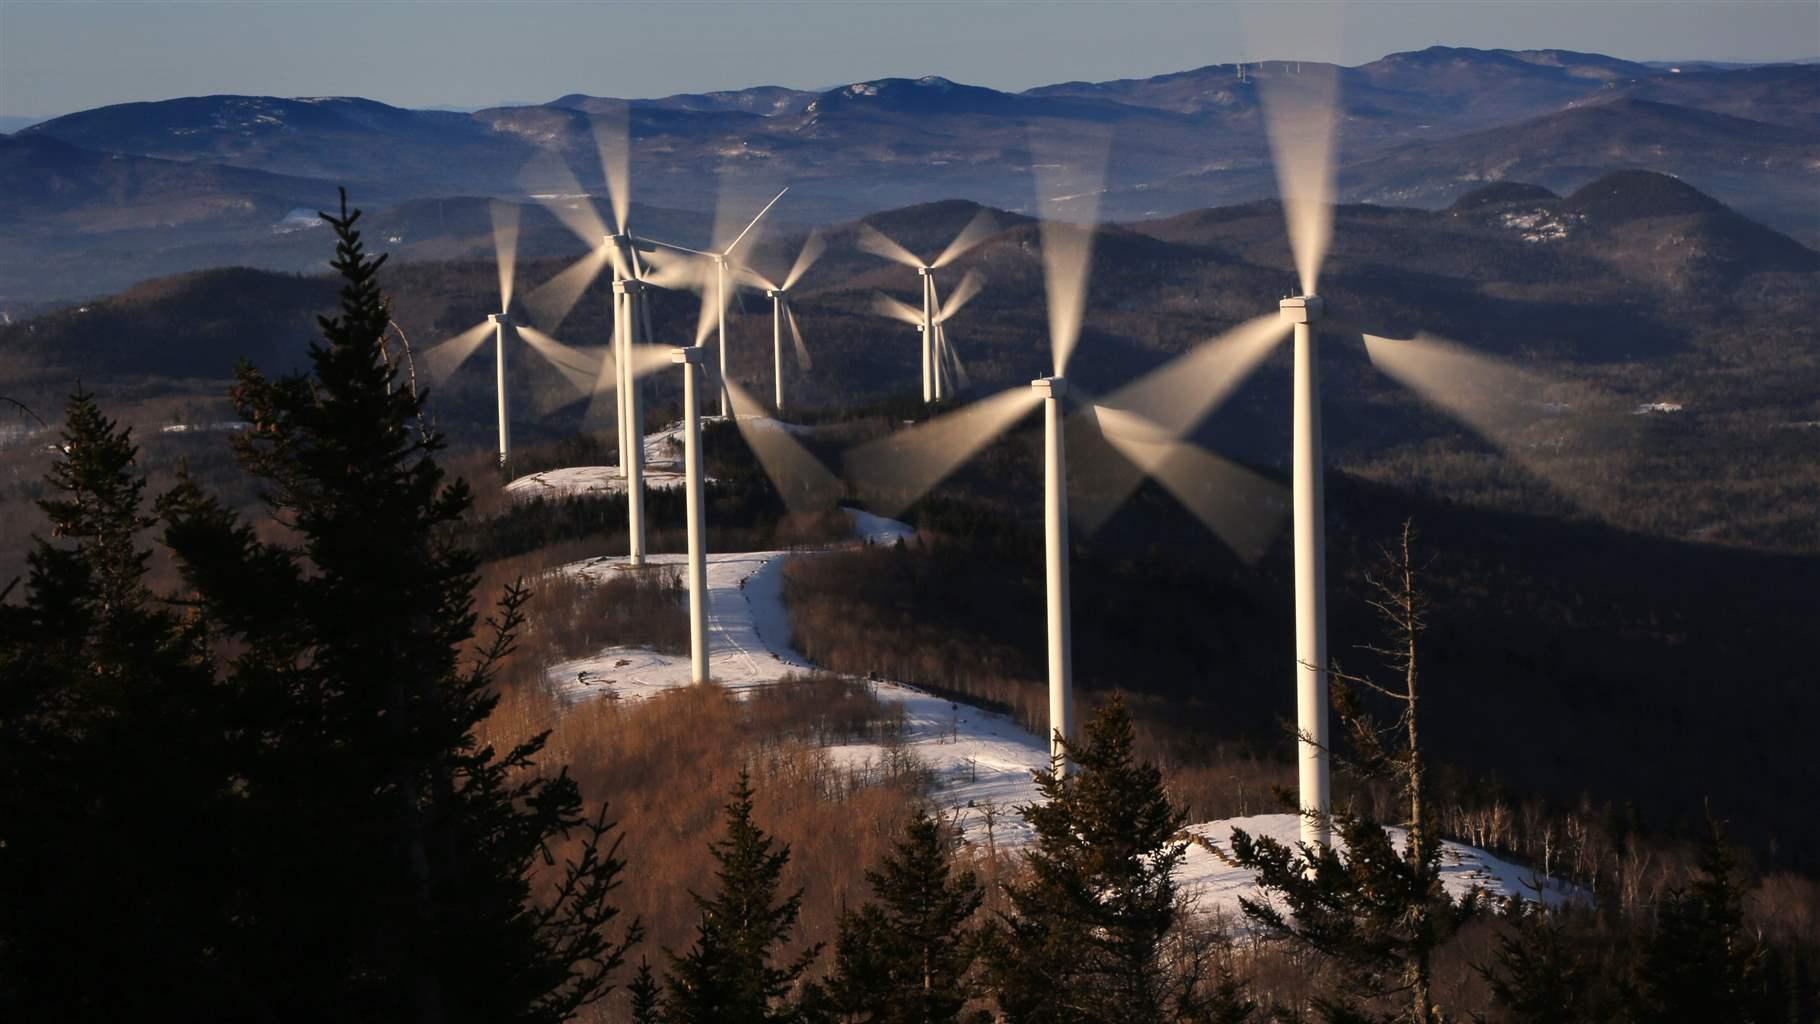 To Counteract Trump on Climate, States Set Clean Energy